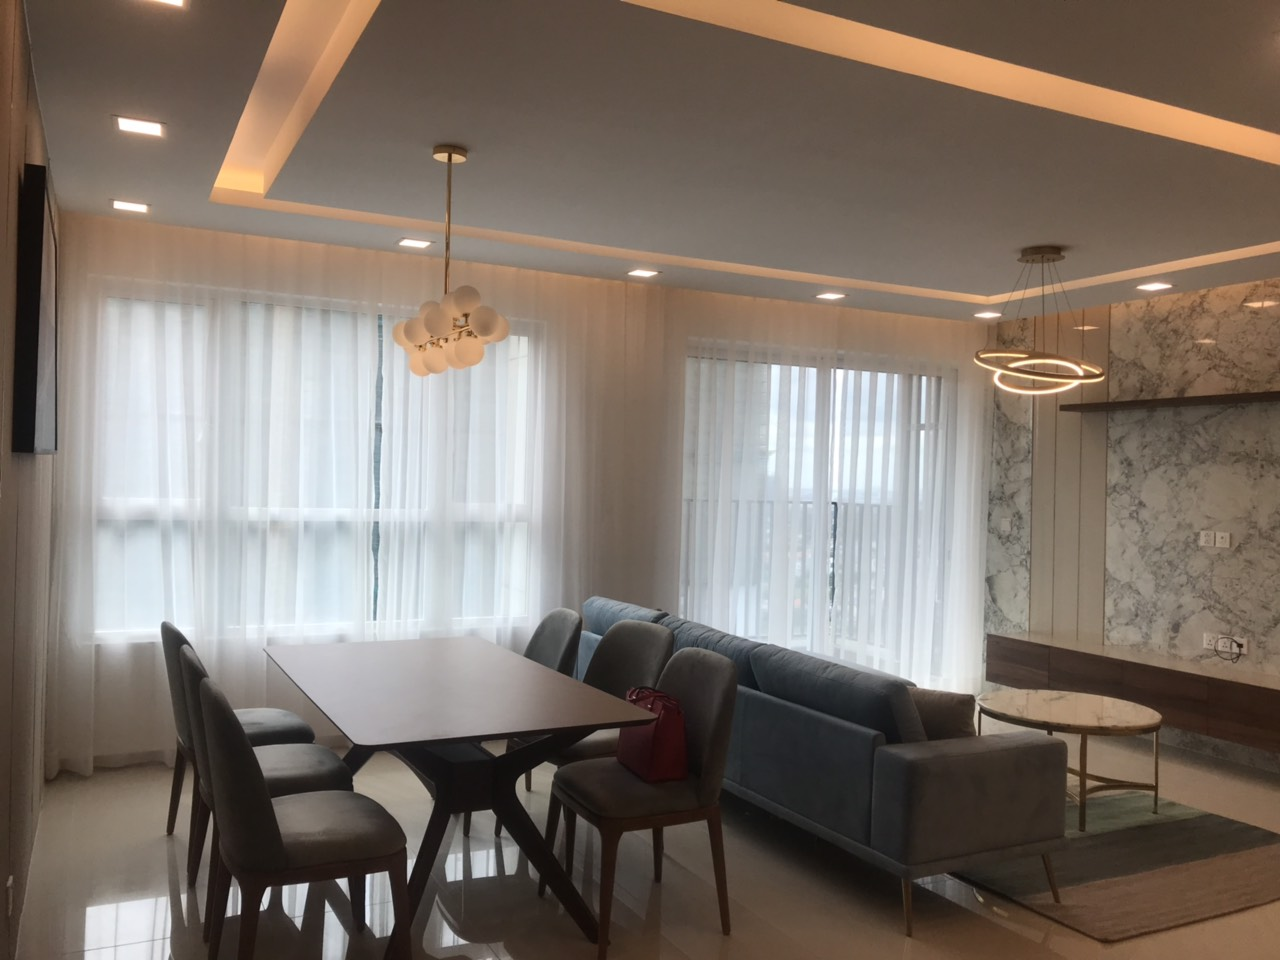 apartment for rent in district 2 hcmc vista verde apartment for rent in district 2 hcmc D221565(13)